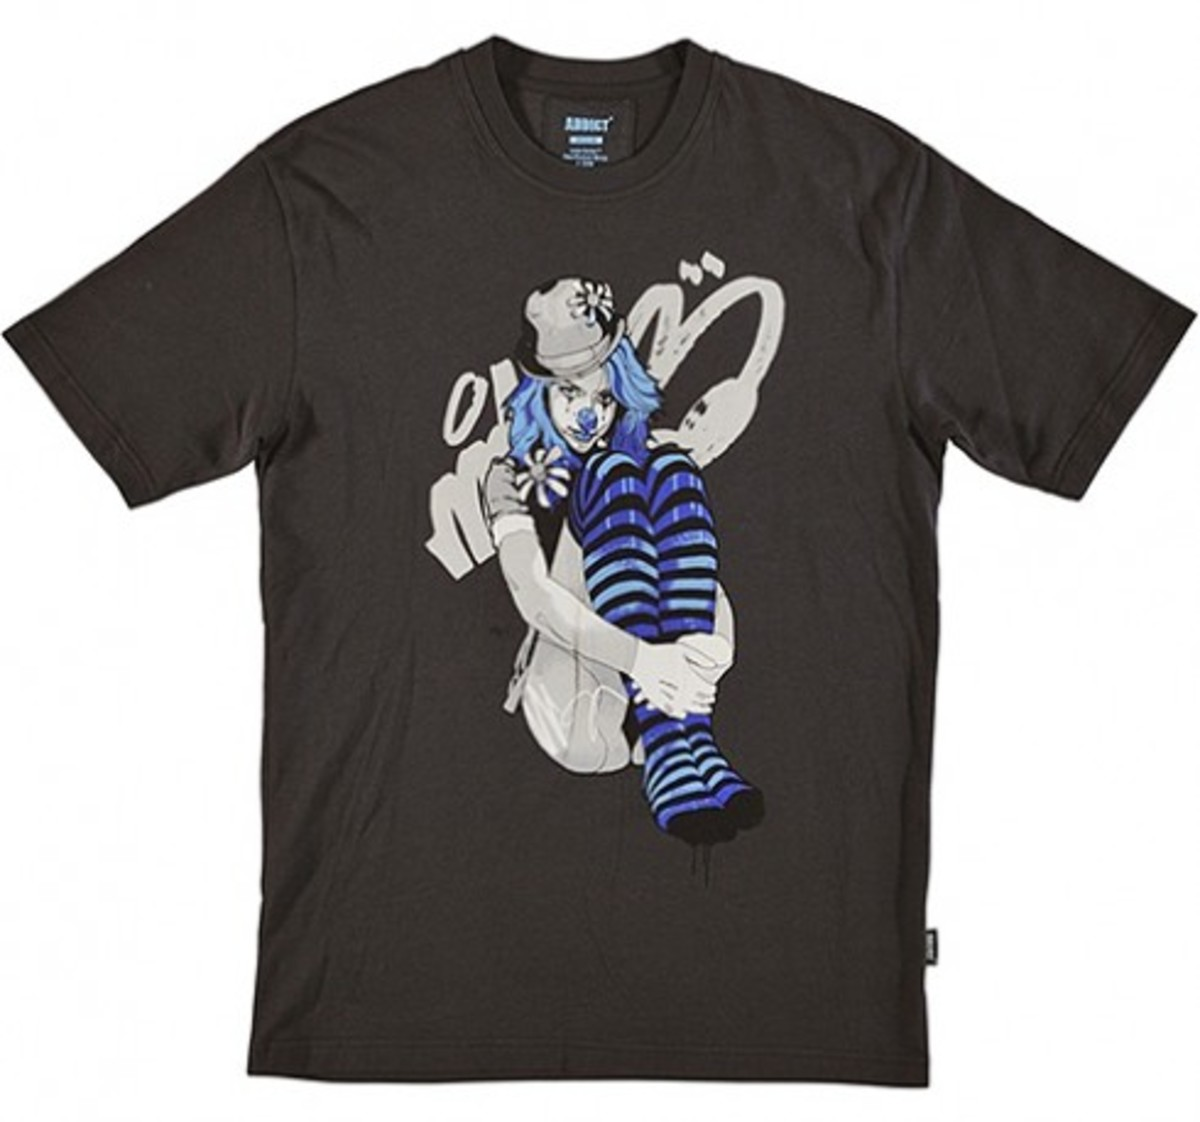 ADDICT x Mitch - Clown Series T-Shirt Collection | Girl 1 Stripes